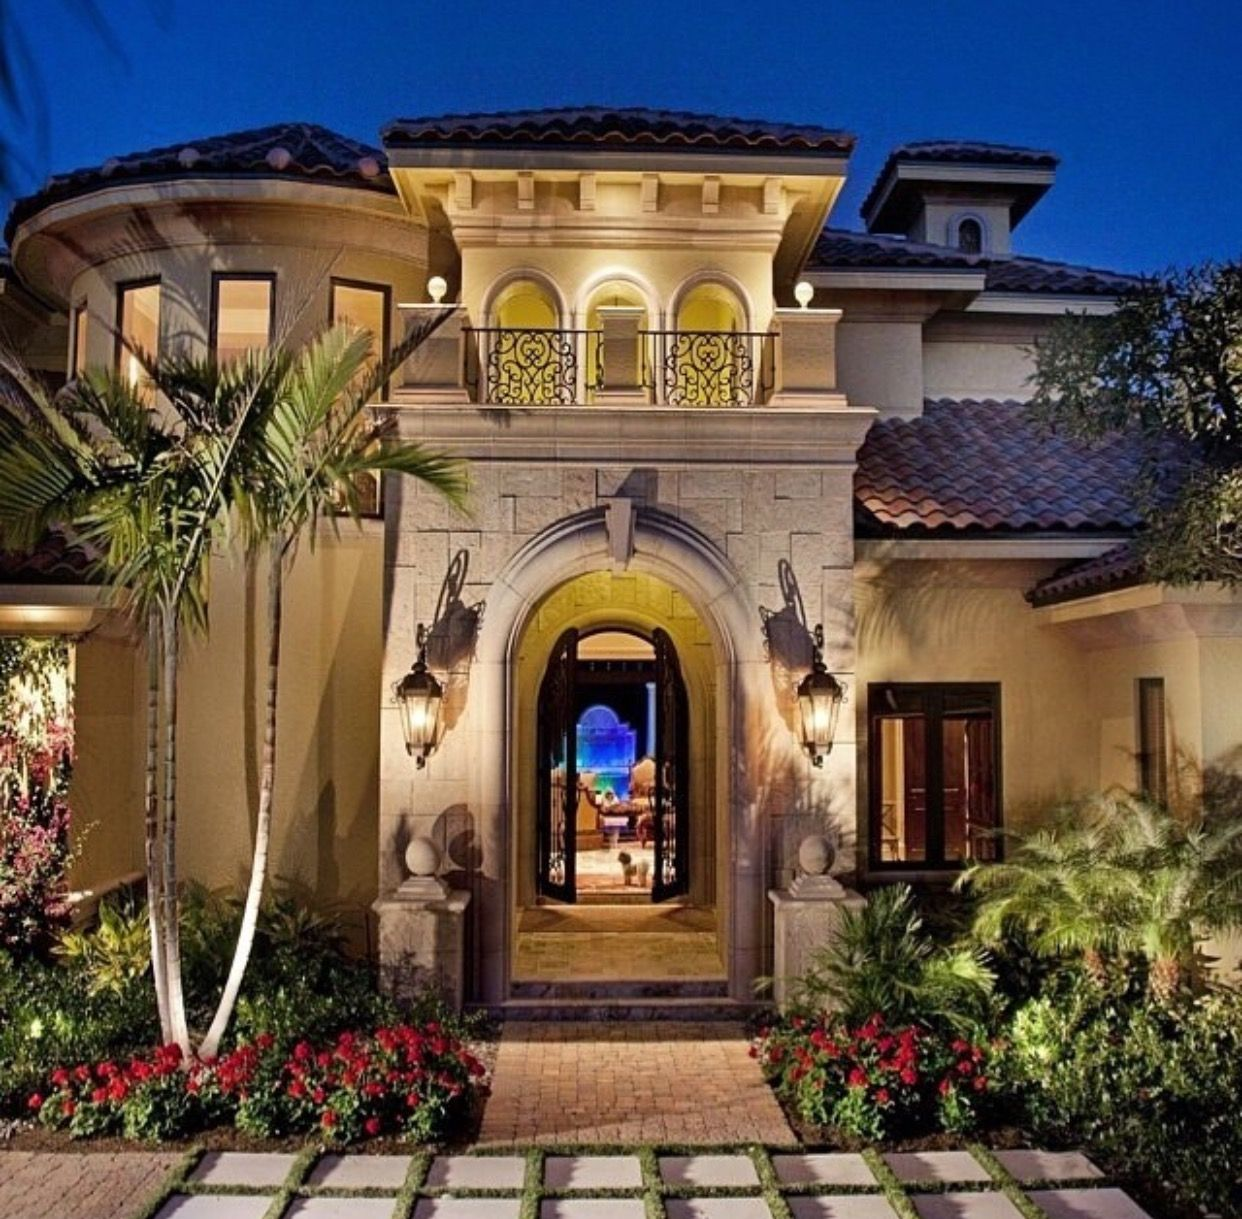 15 Phenomenal Mediterranean Exterior Designs Of Luxury Estates: Luxury Mediterranean Style Home